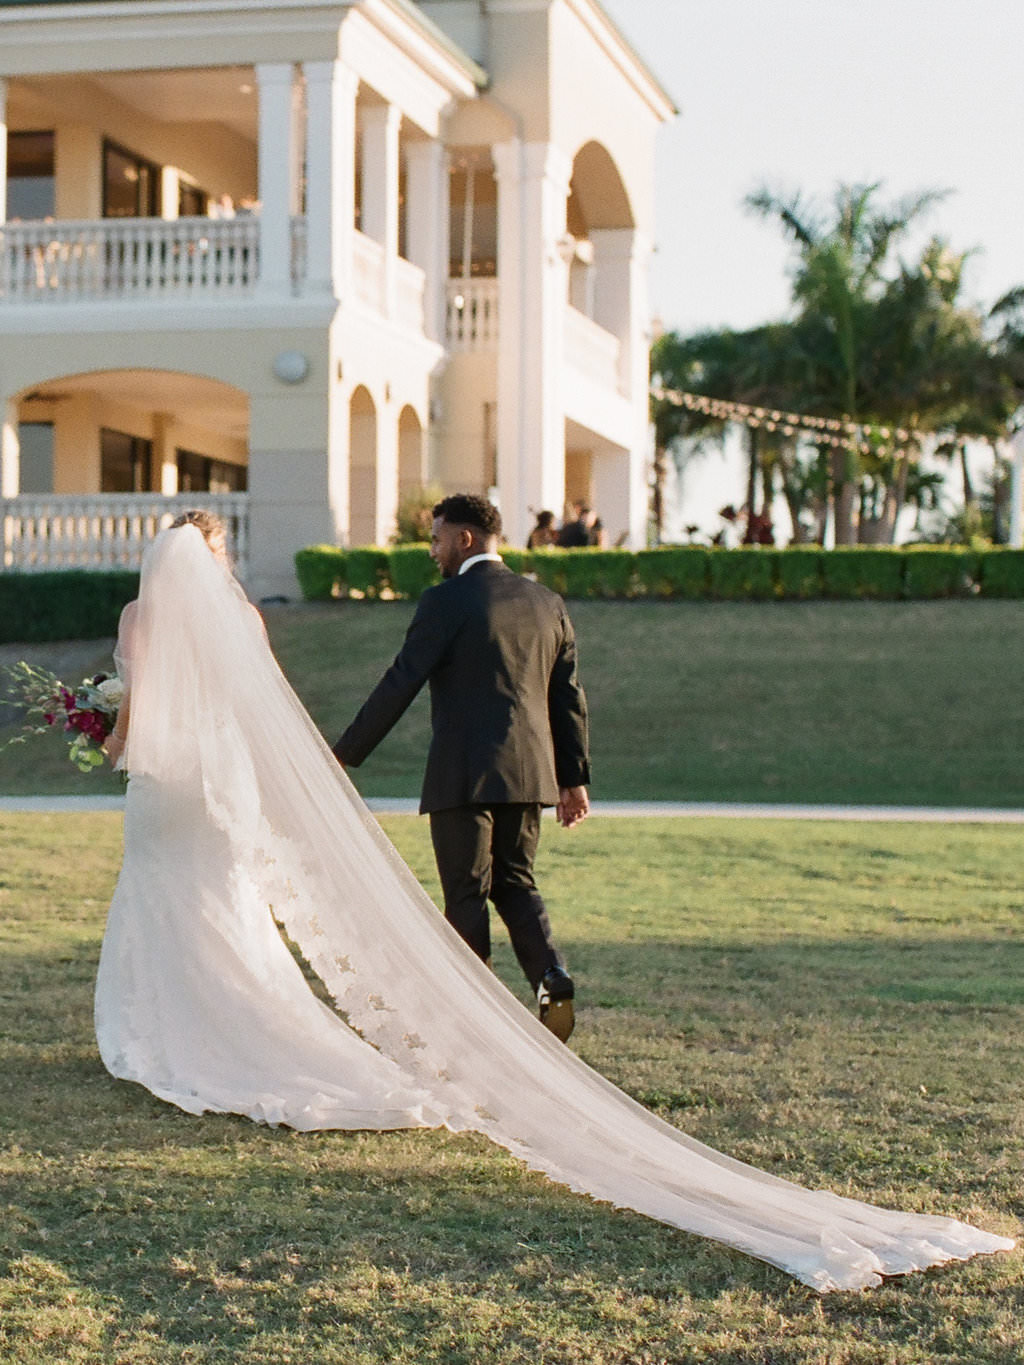 Outdoor Wedding Ceremony Exit Portrait, Bride in Illusion Spaghetti Strap Illusion Lowback Lace Dress and Cathedral Long Veil, Groom in Black Tuxedo   Clearwater Beach Wedding Venue Feather Sound Country Club